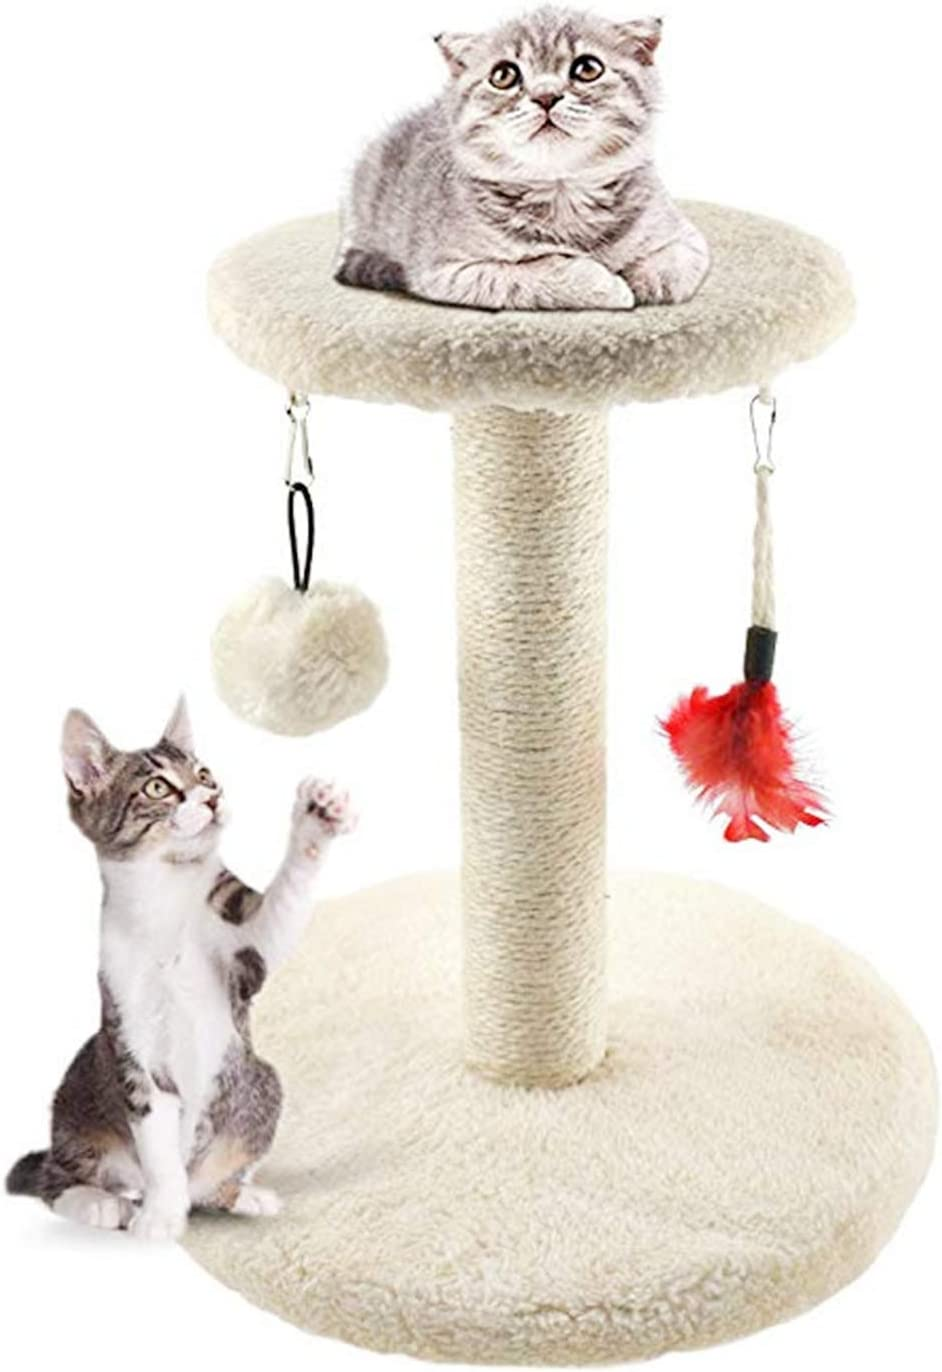 MXiiXM Cat Tree Tower, cat Climbing Frame Furniture Scratching Post for Kitty Climber House Cat Play Tower Activity Centre for Playing Relax and Sleep